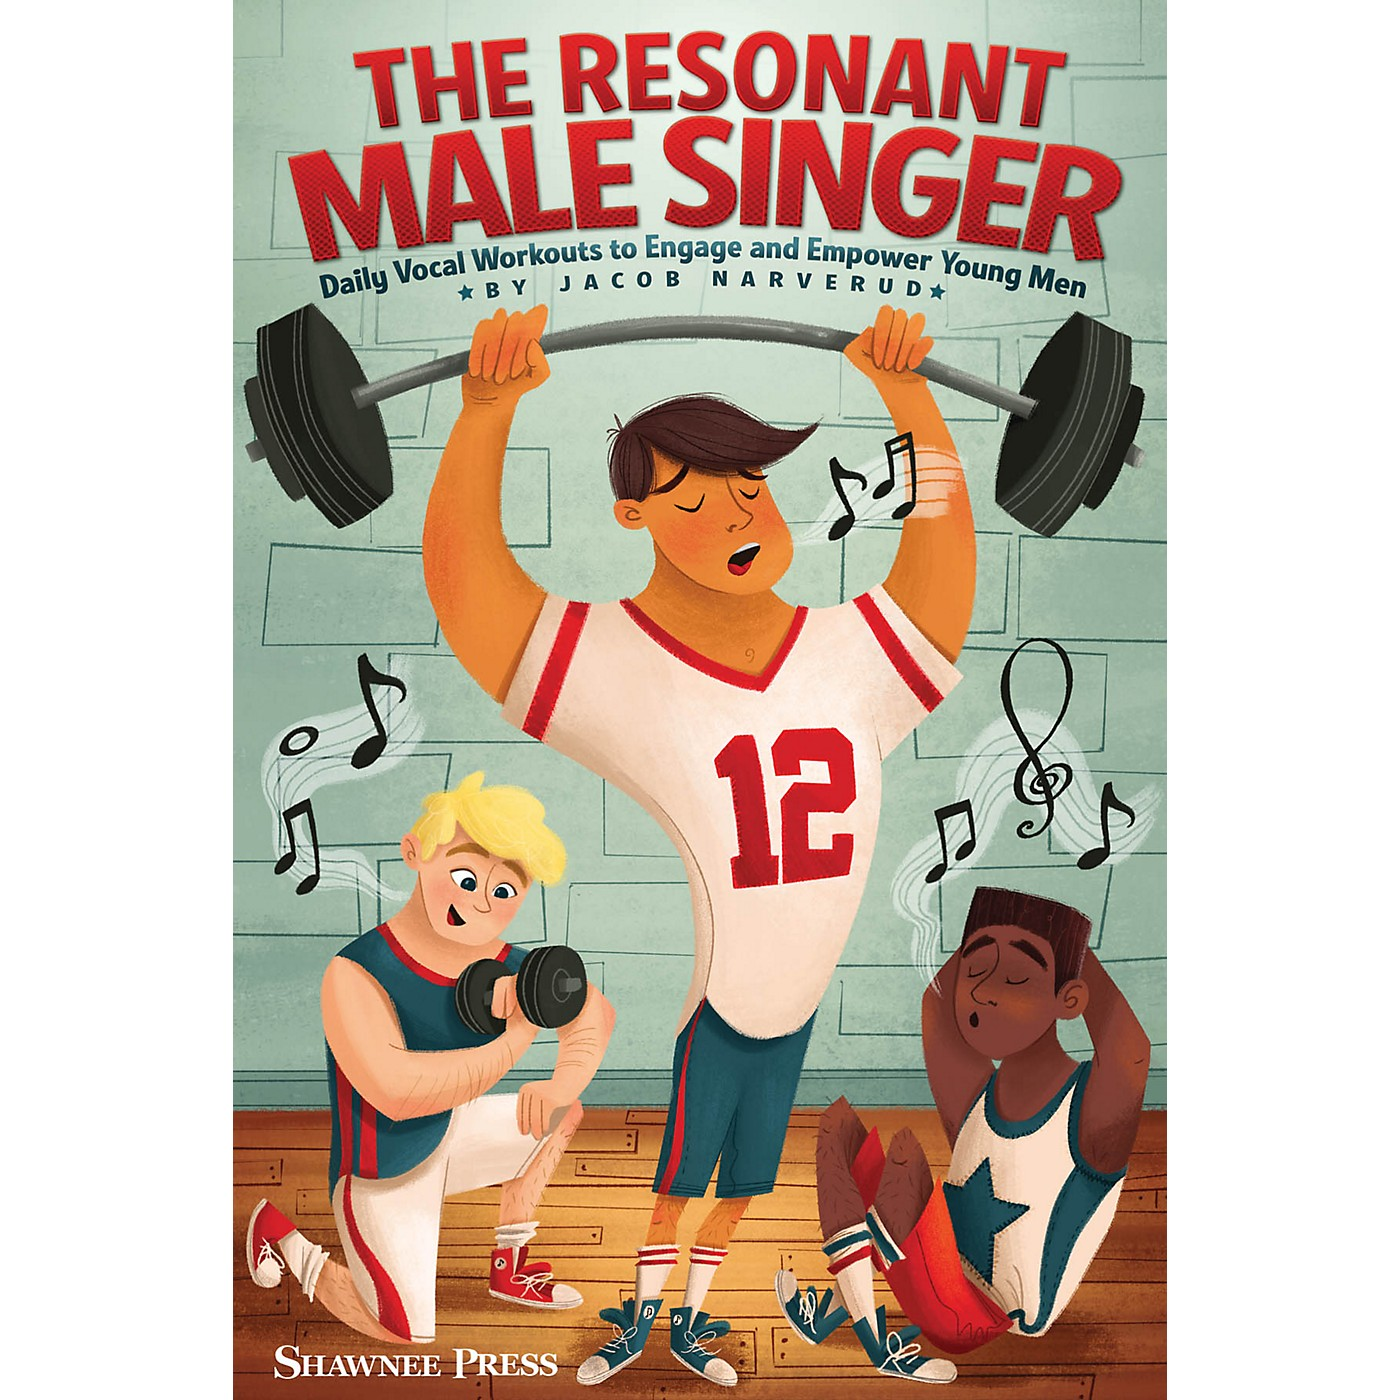 Shawnee Press The Resonant Male Singer (Daily Vocal Workouts to Engage and Empower Young Men) RESOURCE BK thumbnail